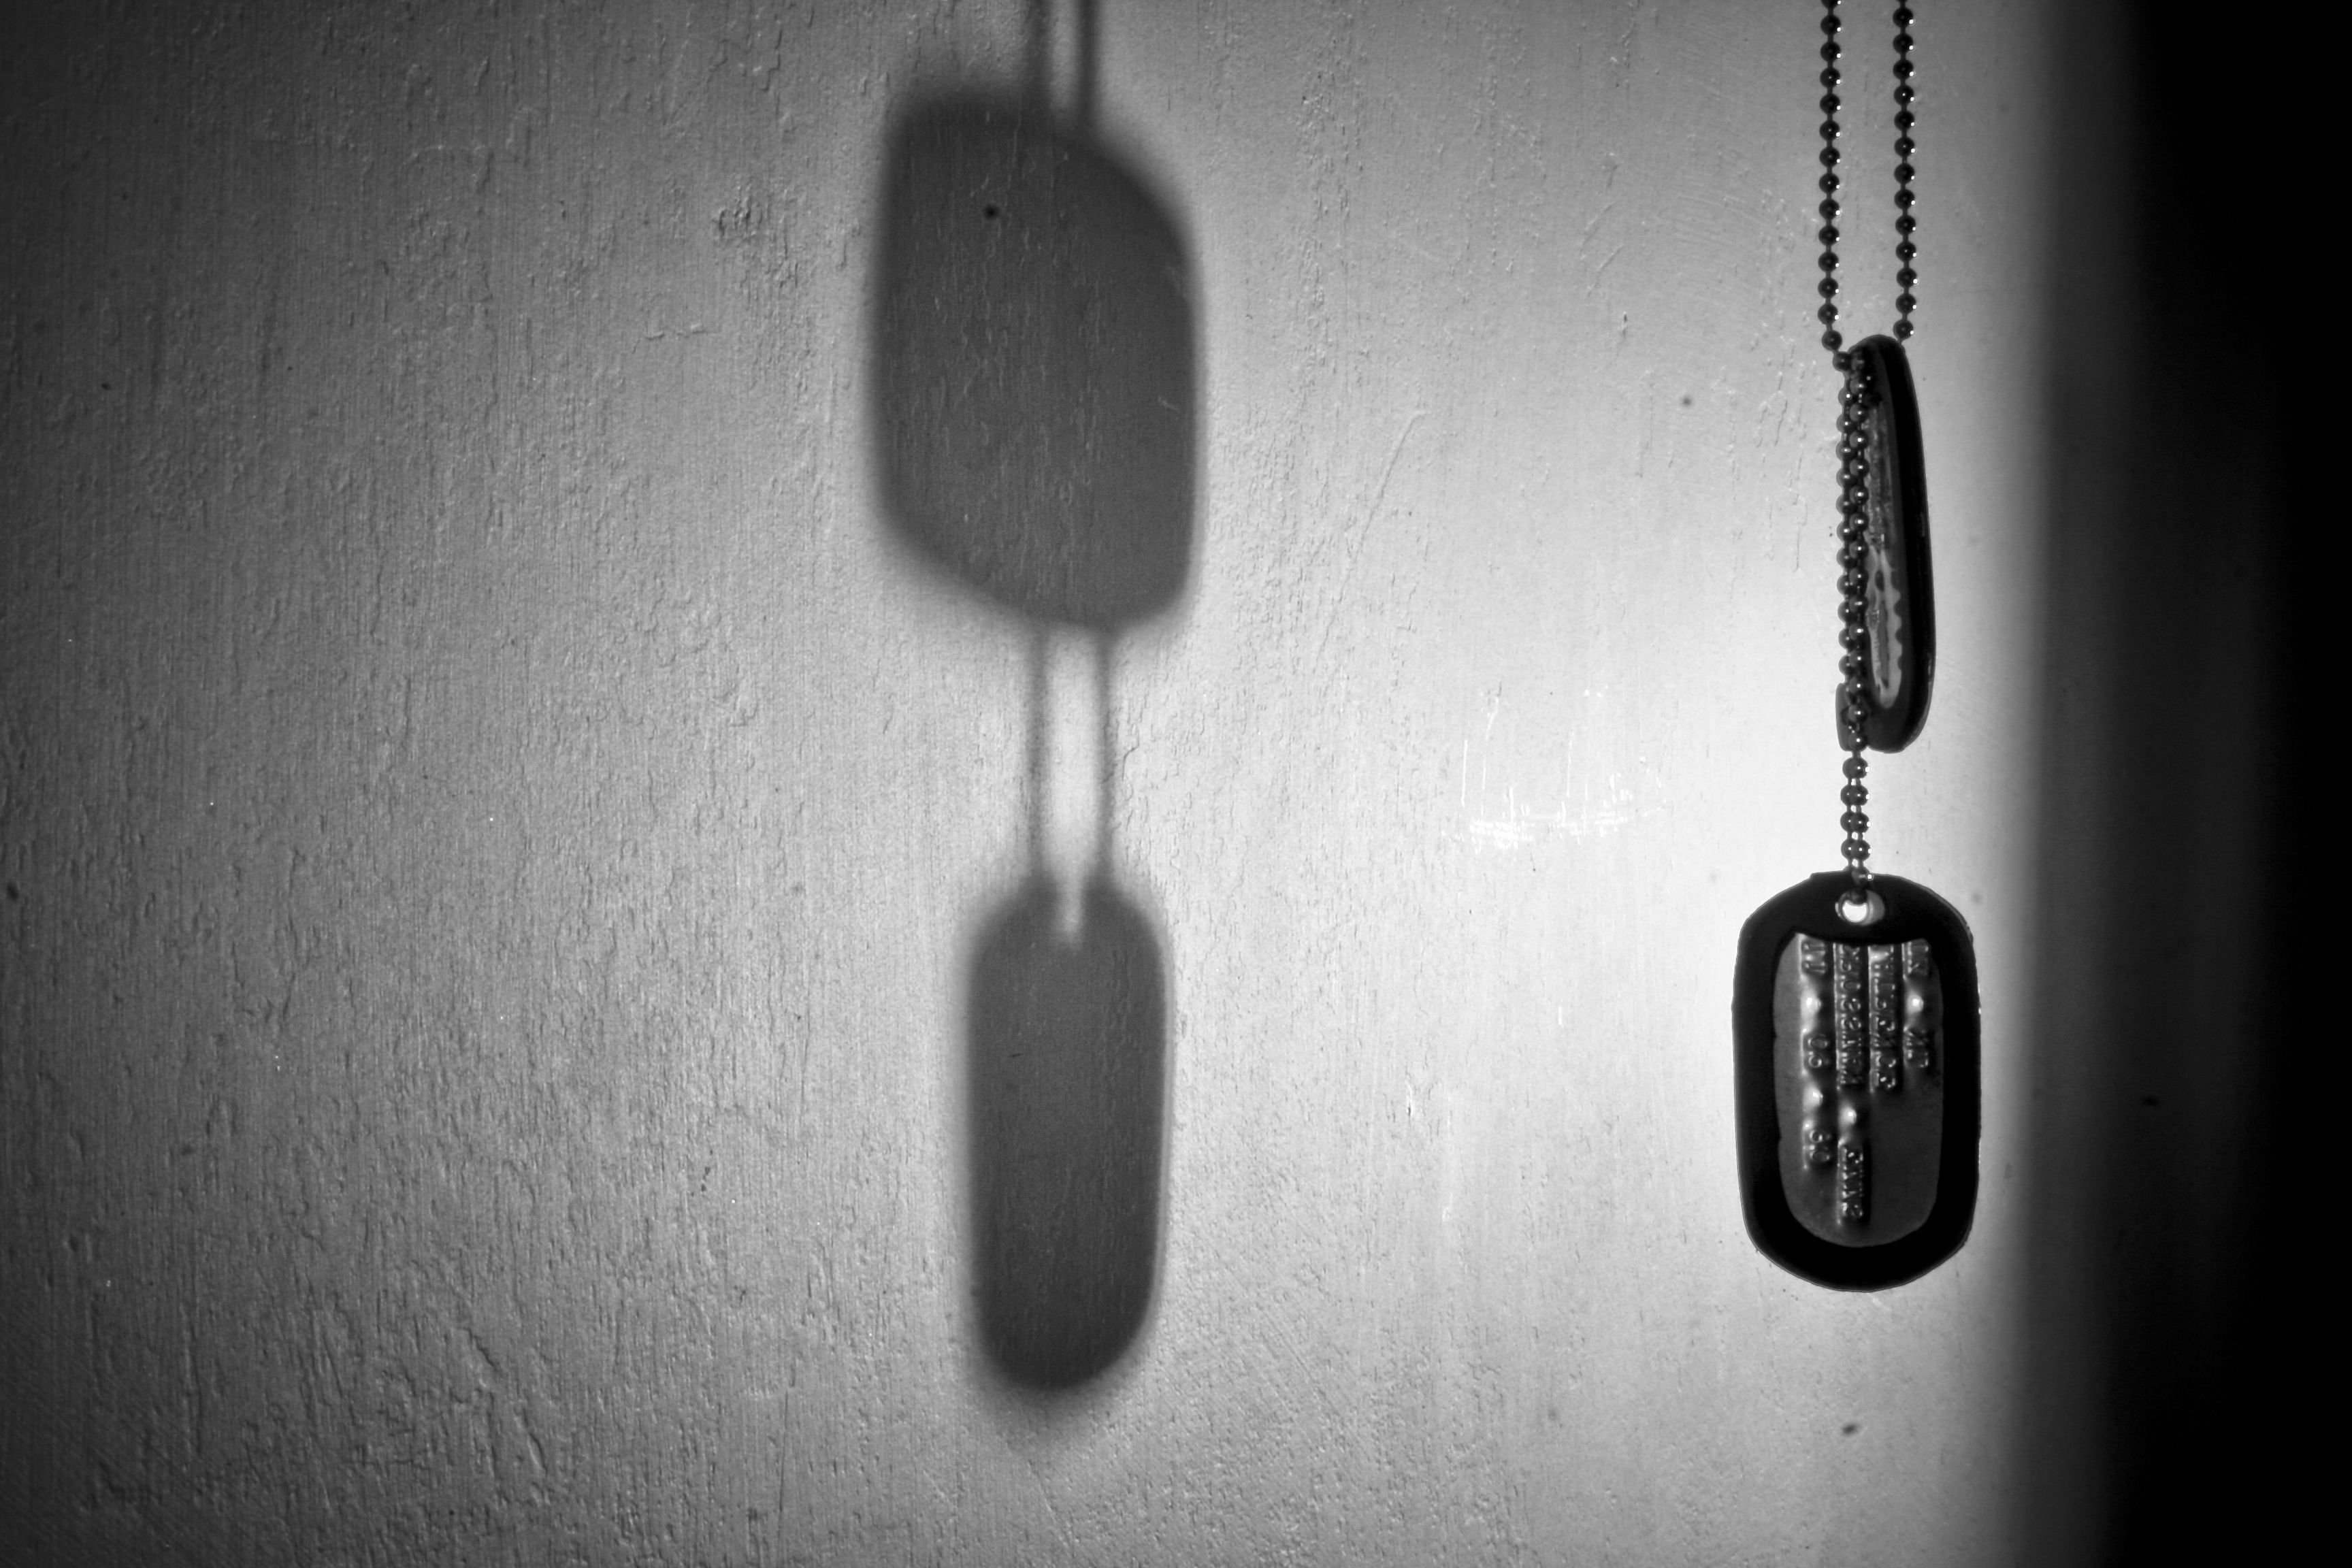 Dog Tags, Dog Tag Necklace, Wallpaper, Product Shot, - Military Dog Tag Background , HD Wallpaper & Backgrounds